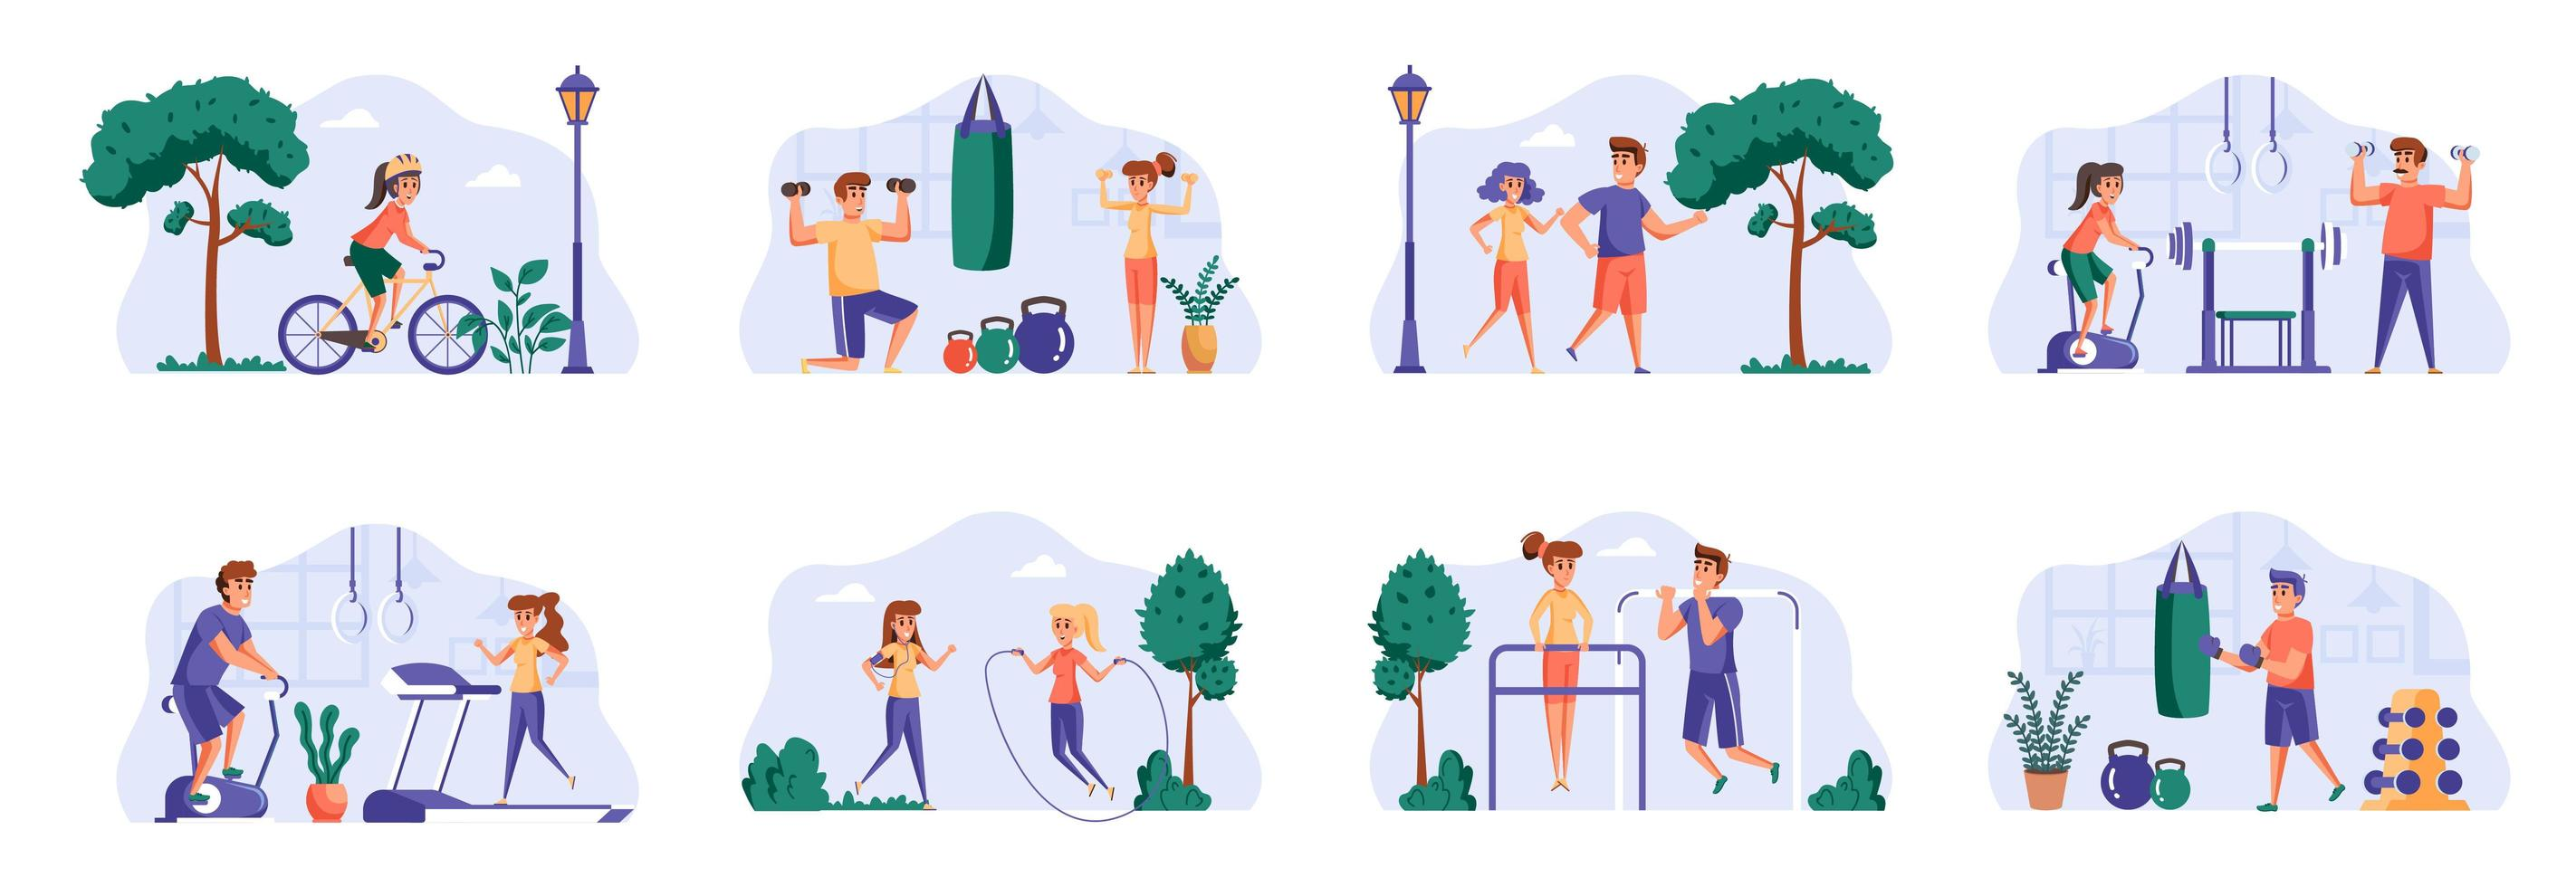 Fitness scenes bundle with people characters. vector